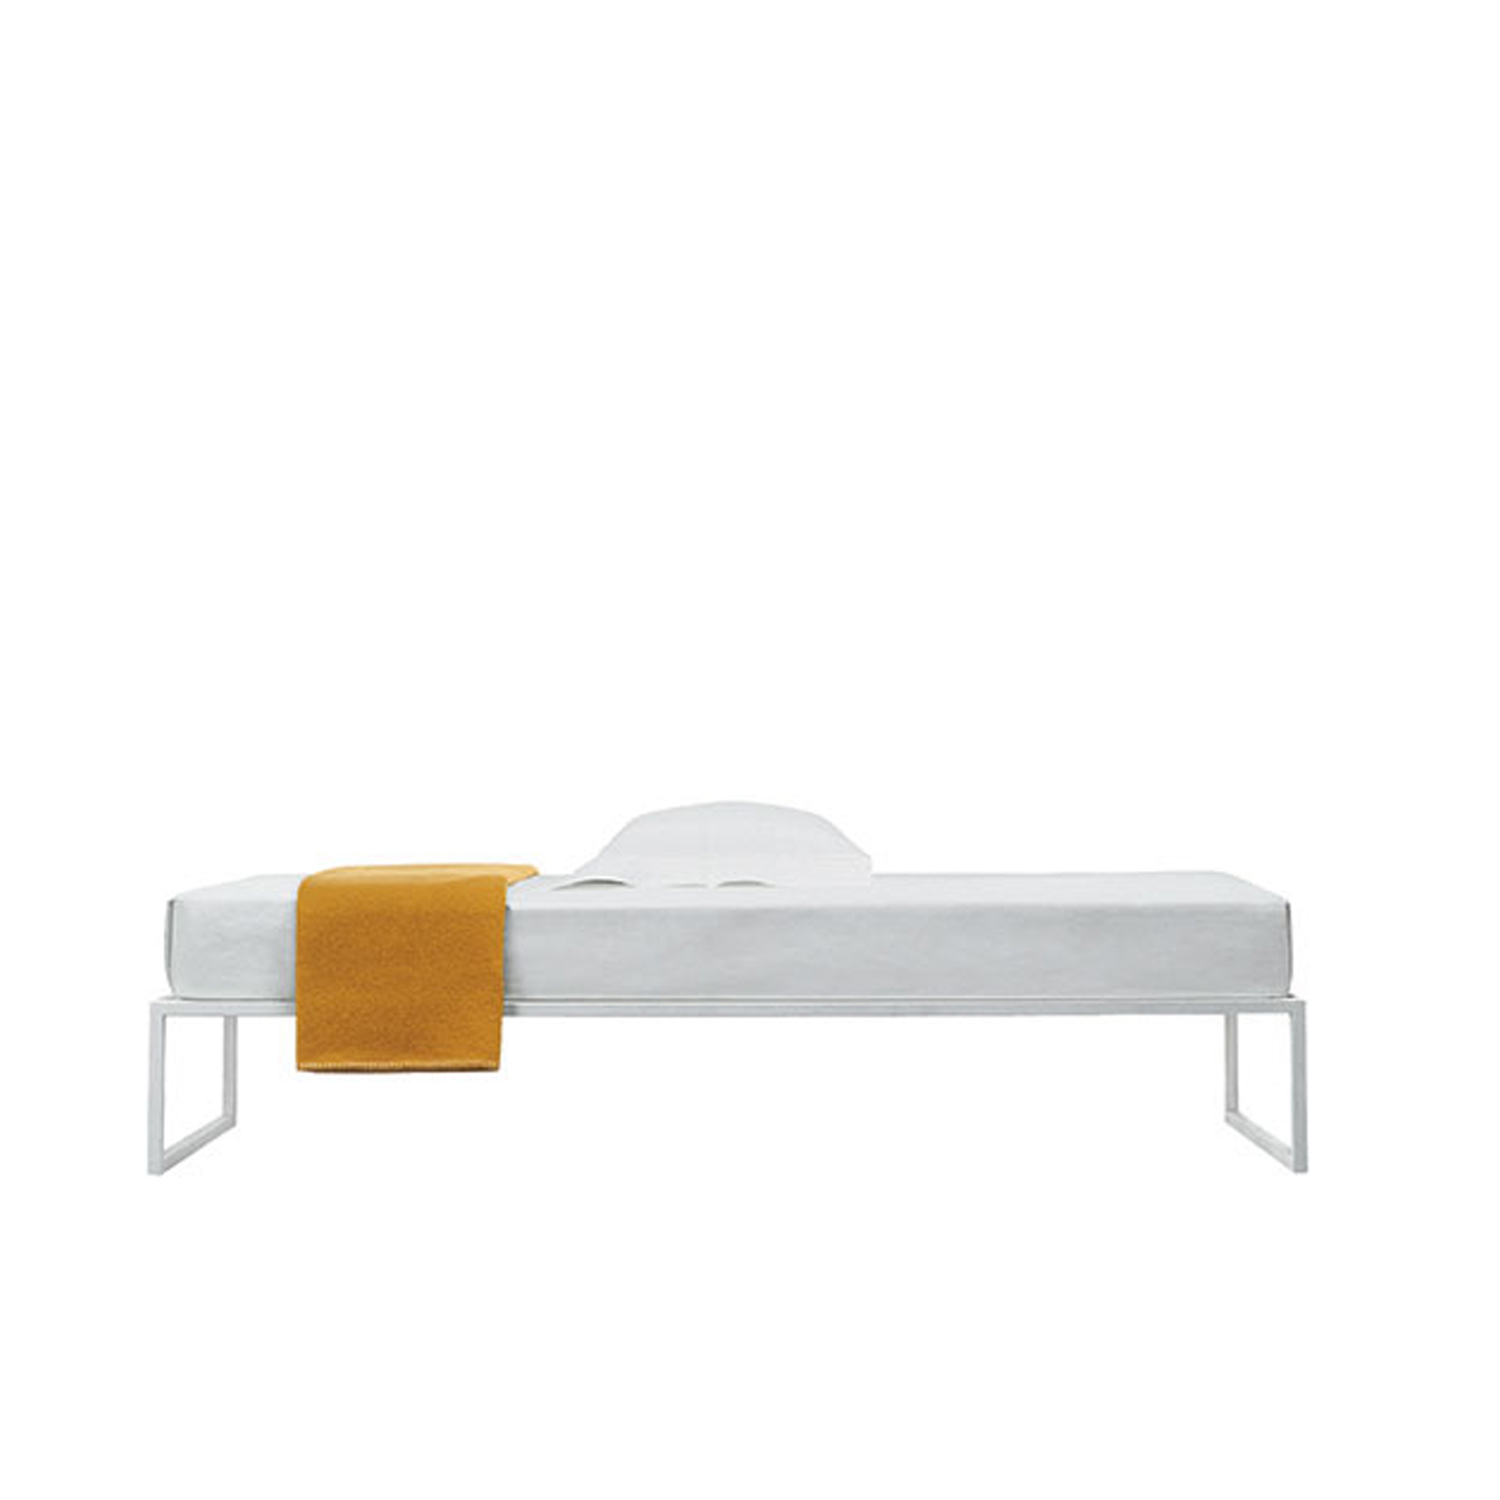 Fronzoni '64 Bed Large - The perfect emblem of AG Fronzoni's works, the Fronzoni '64 bed is a conceptual furnishing piece; a sober and essential encounter of straight lines with spatial planes, where geometry reigns supreme.